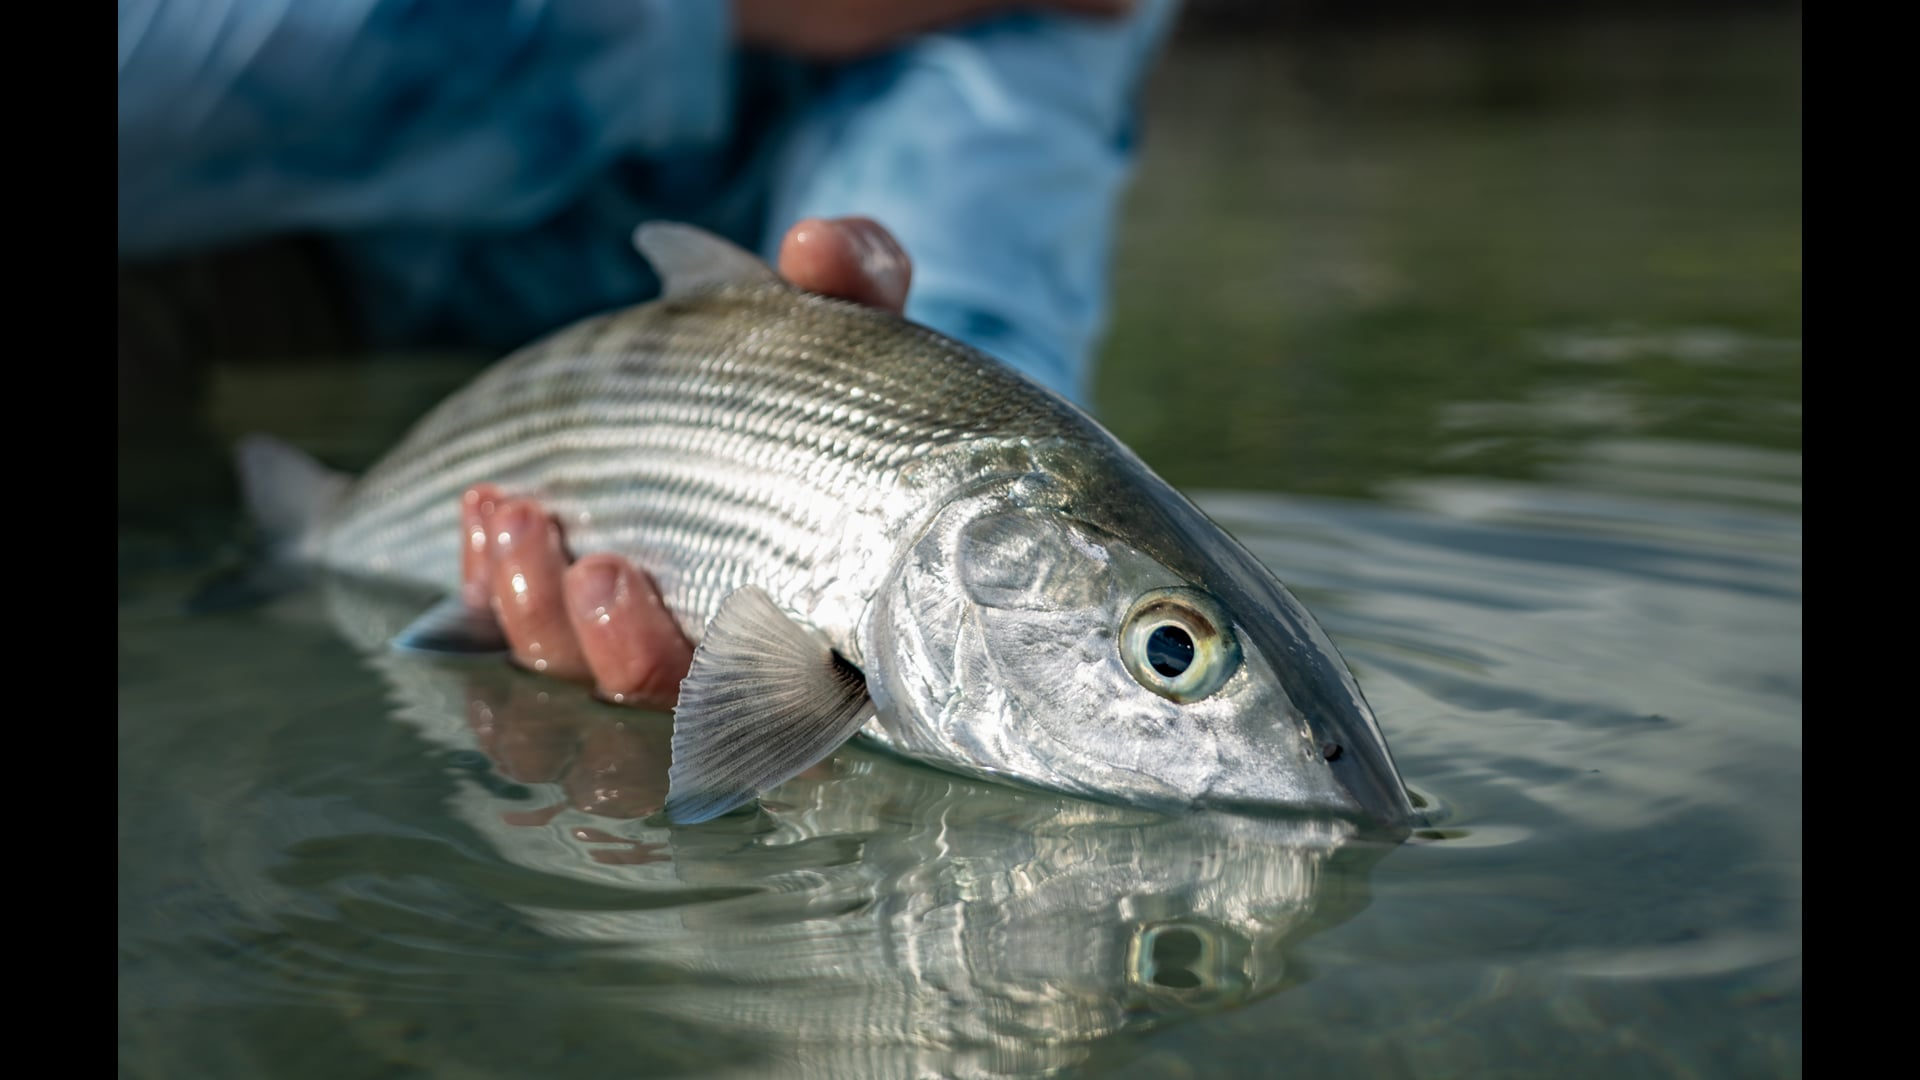 DIY-Bonefishing-Belize-at-Cayo-Frances-Farm-FLY